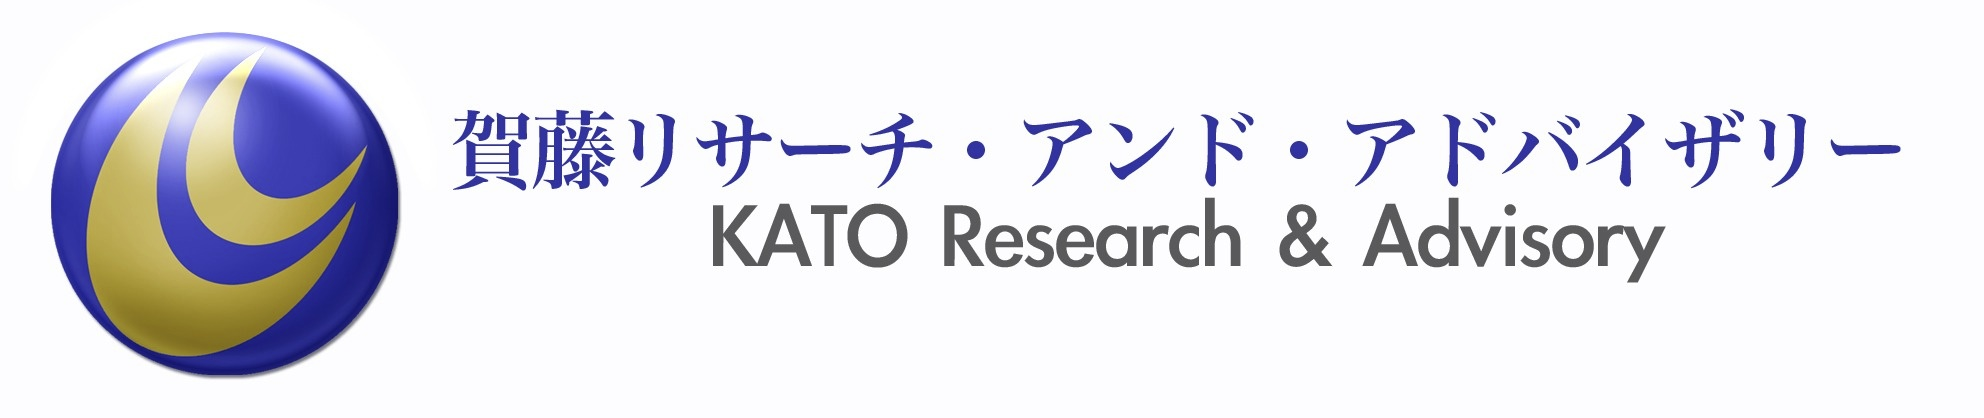 KATO Research & Advisory